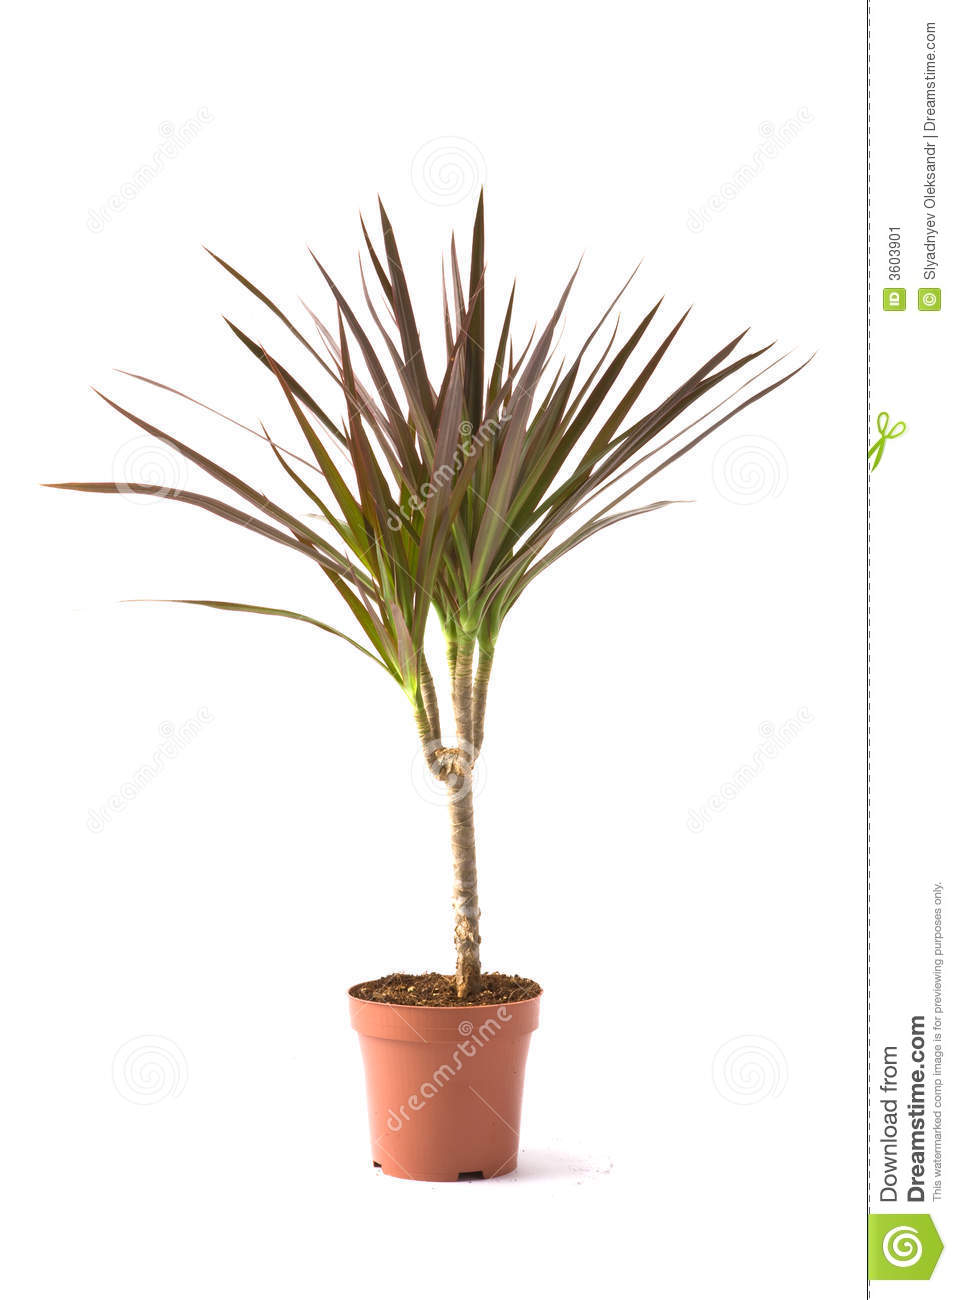 dracaena marginata magenta stock image image of leaf. Black Bedroom Furniture Sets. Home Design Ideas